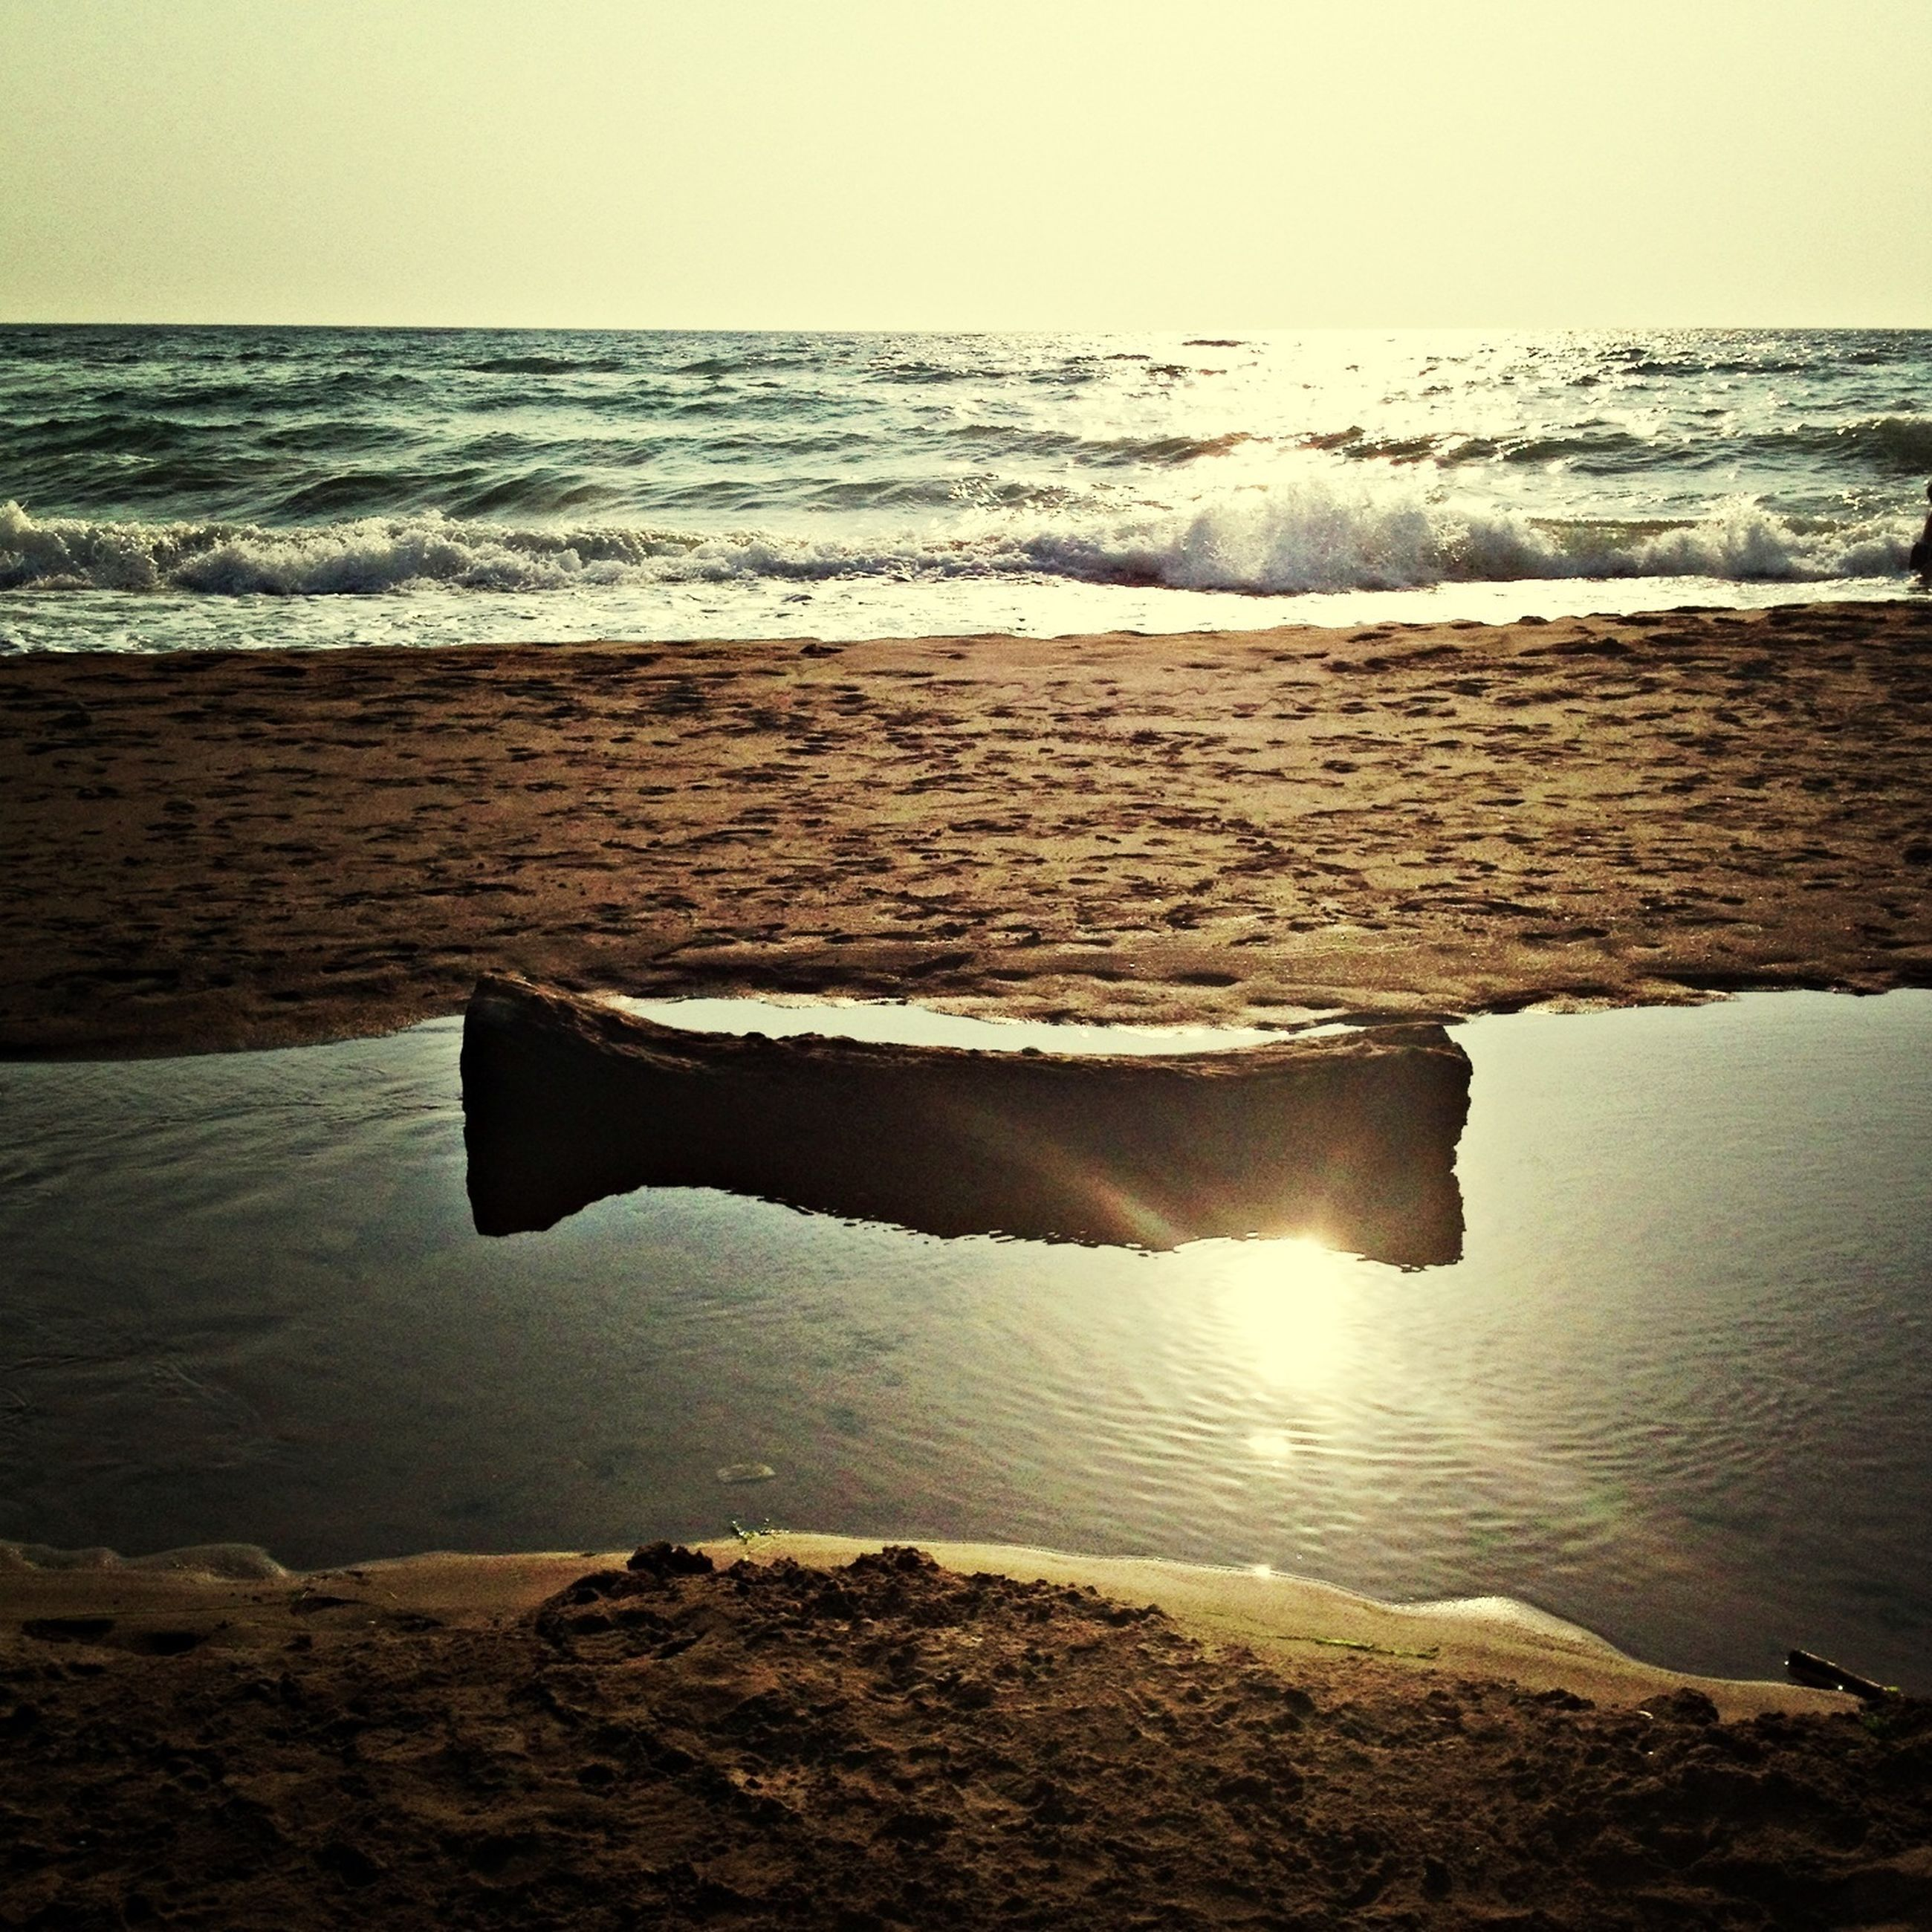 sea, water, horizon over water, beach, tranquil scene, shore, tranquility, scenics, beauty in nature, nature, clear sky, sand, wave, idyllic, sky, remote, calm, non-urban scene, outdoors, copy space